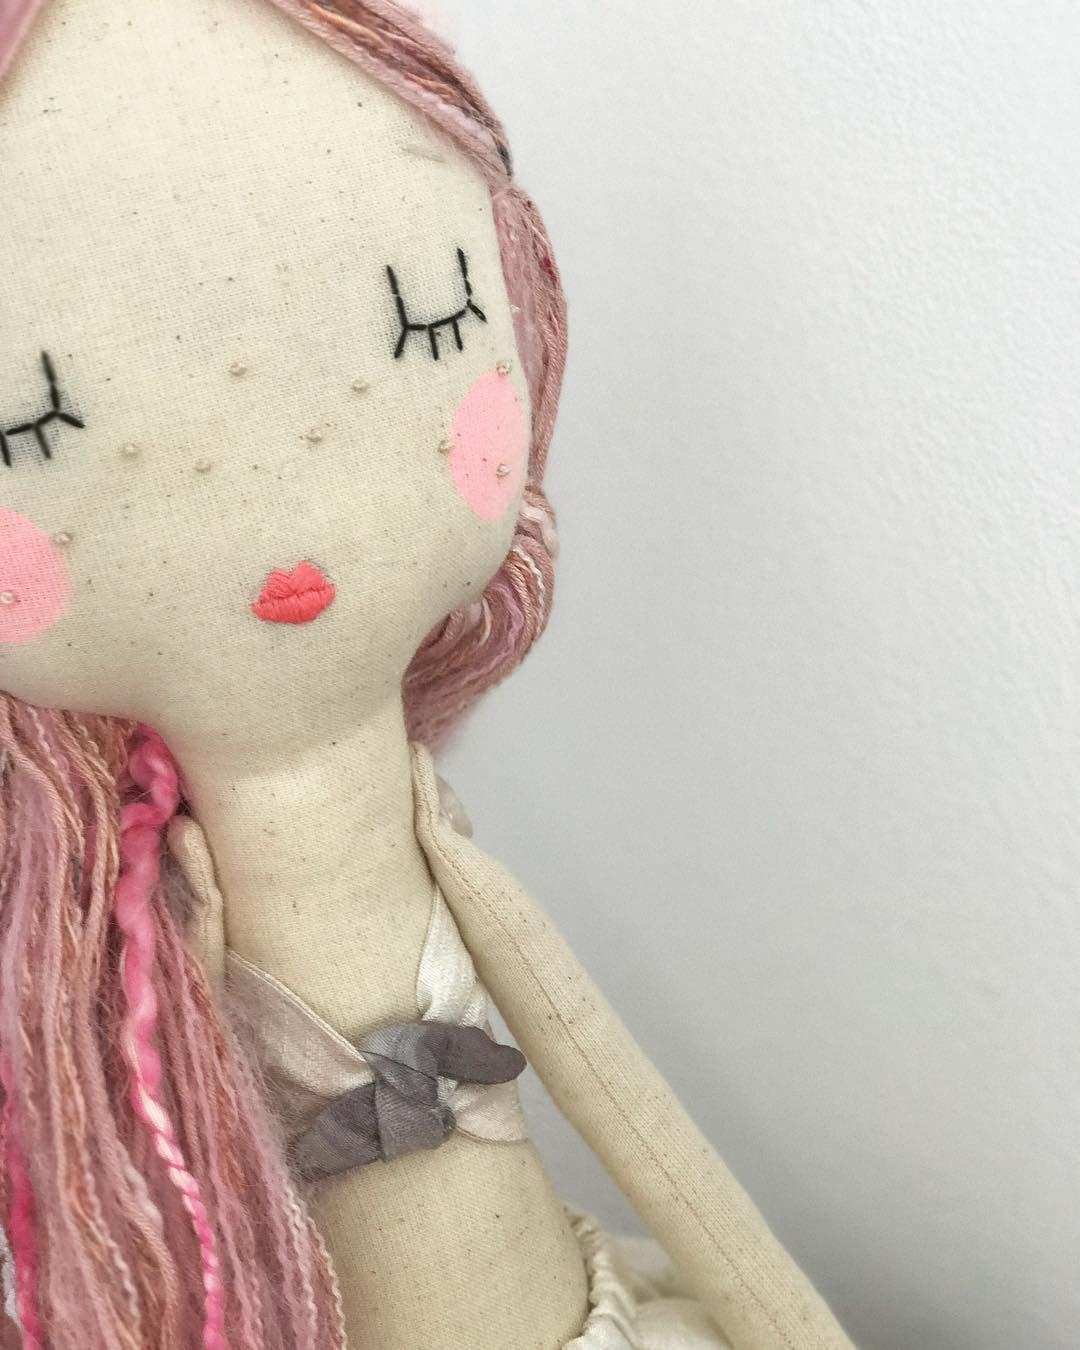 pink hair don't care!  happy Monday everyone x  #velvetrainbowsboutique #pink #pinkhair #instadoll #heirloomdoll #clothdoll #forkids #handmadetoys #handmadegifts #embroidery #nurserydecor #etsy #etsyuk #interior #decor #girlsroom #kidsplay #mamablogger #blogger